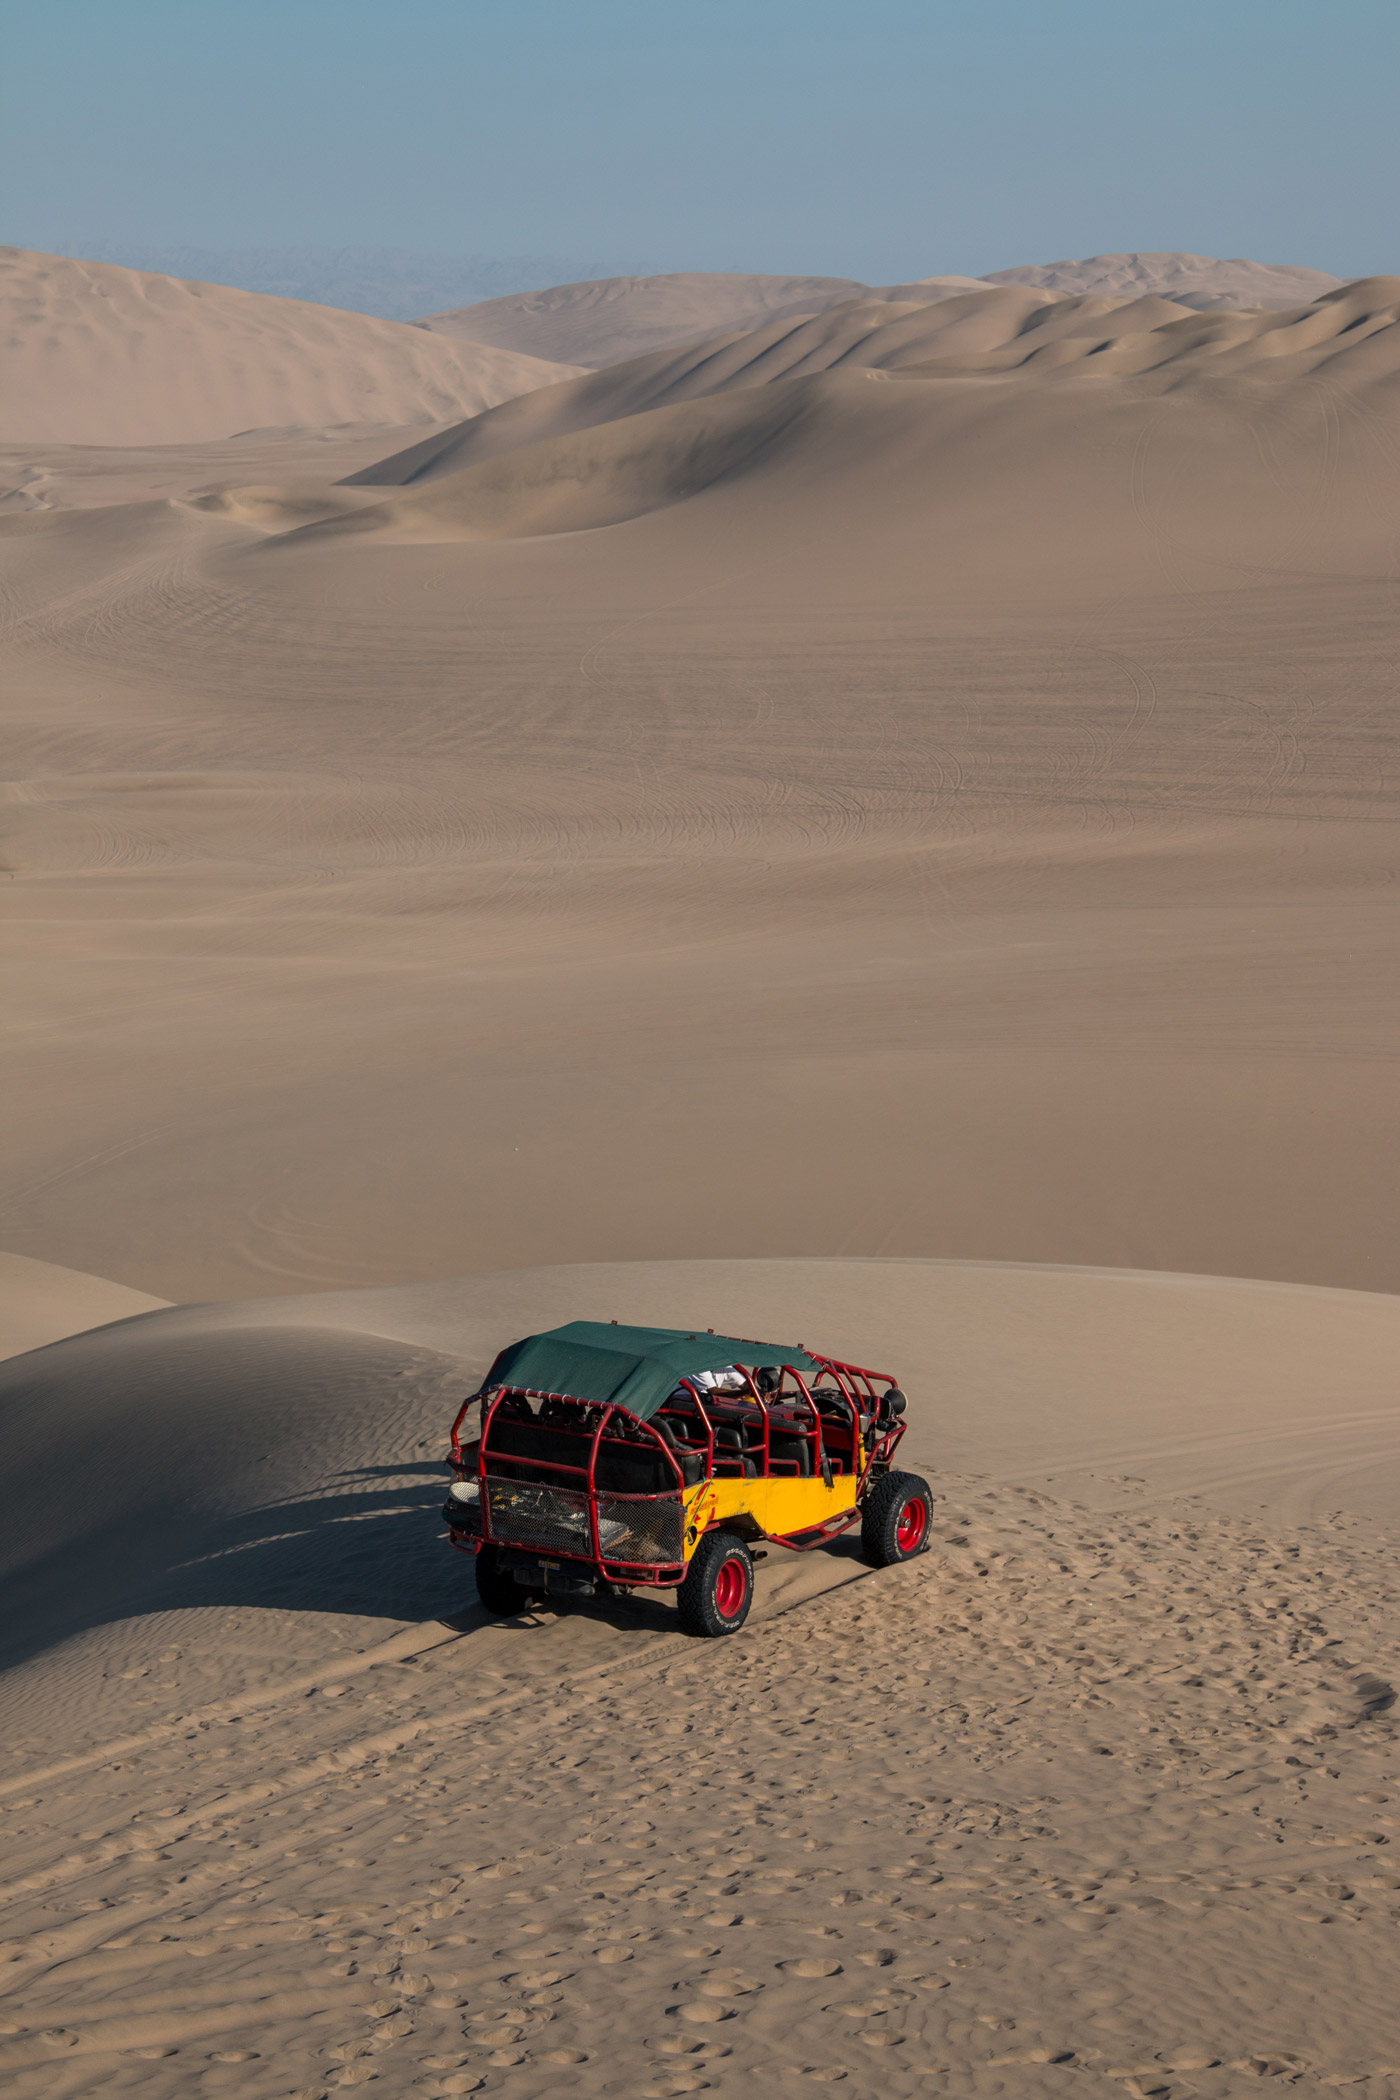 Our buggie parked on top of a dune